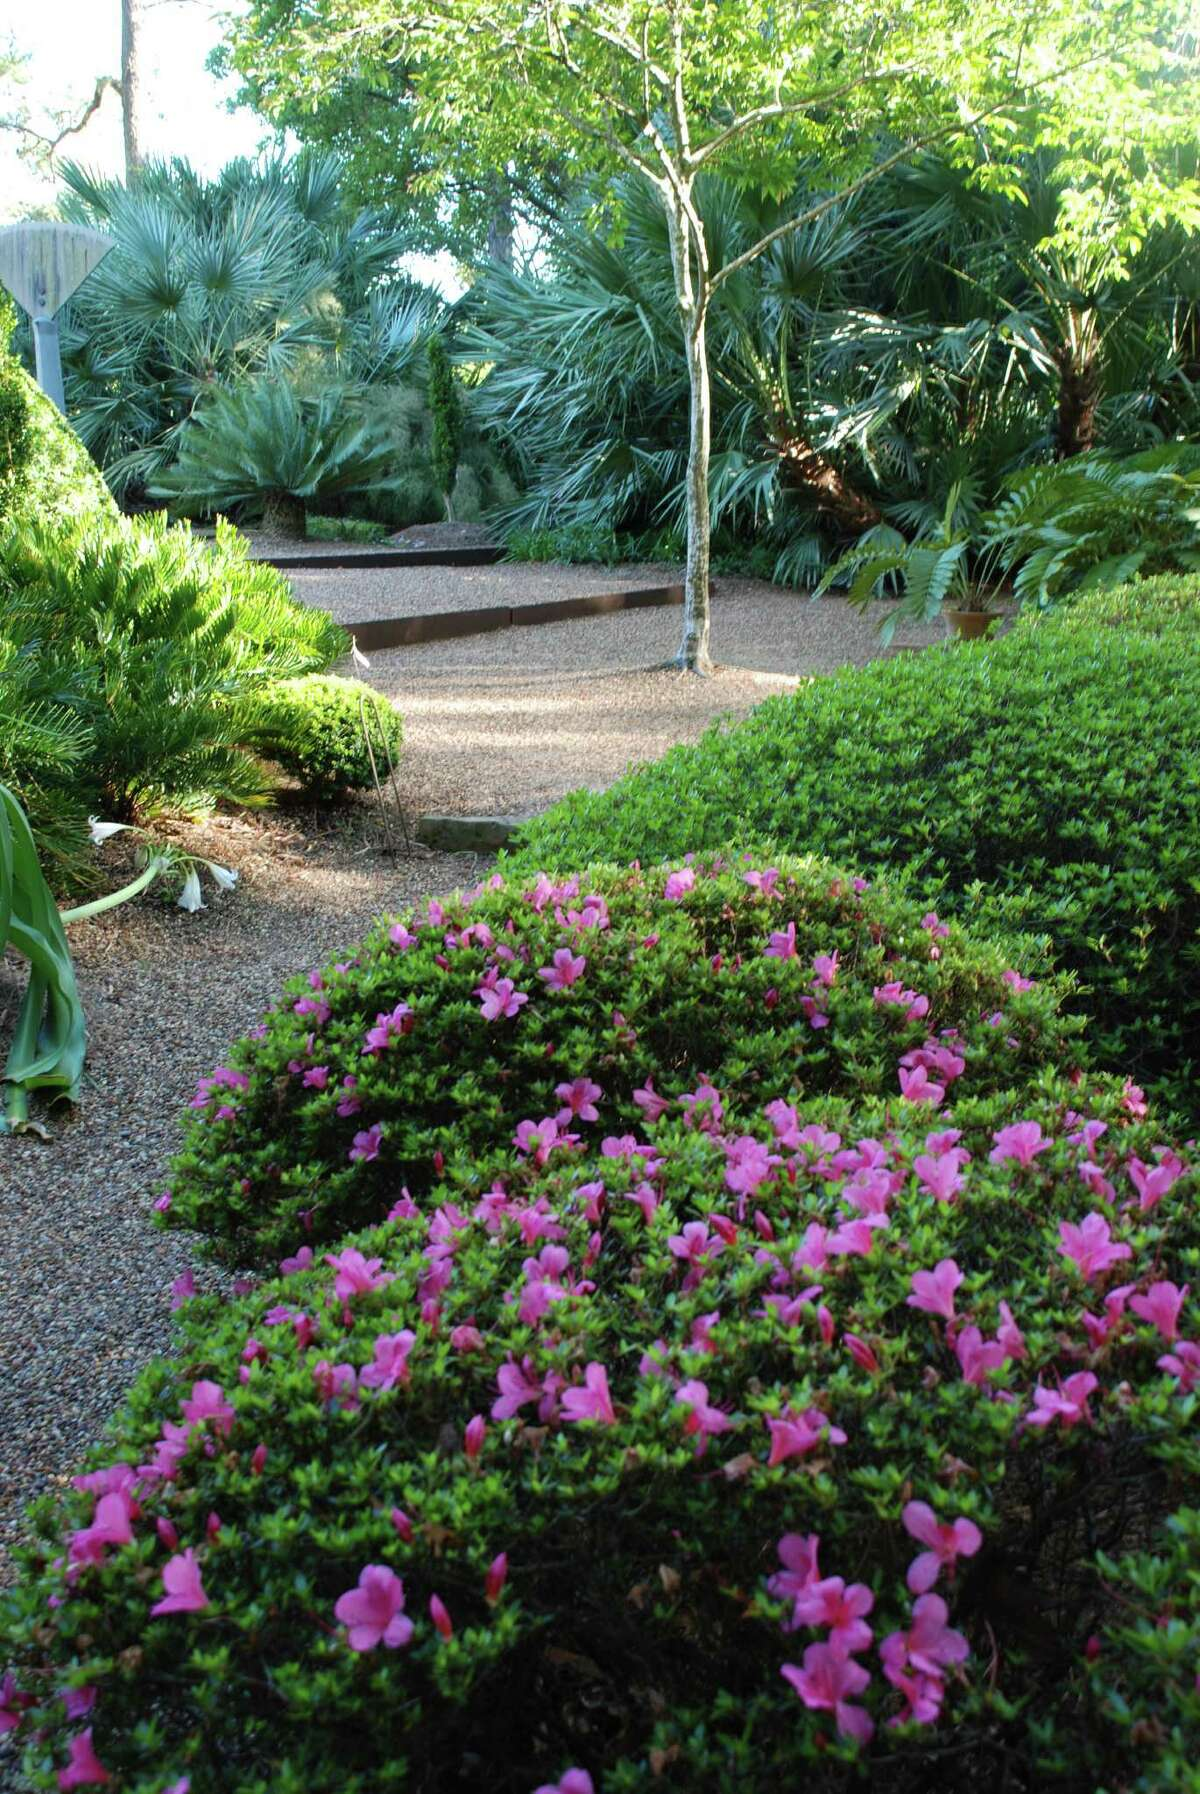 Satsuki azaleas, palms and cycads thrive in the woodland and dry gardens at Peckerwood.